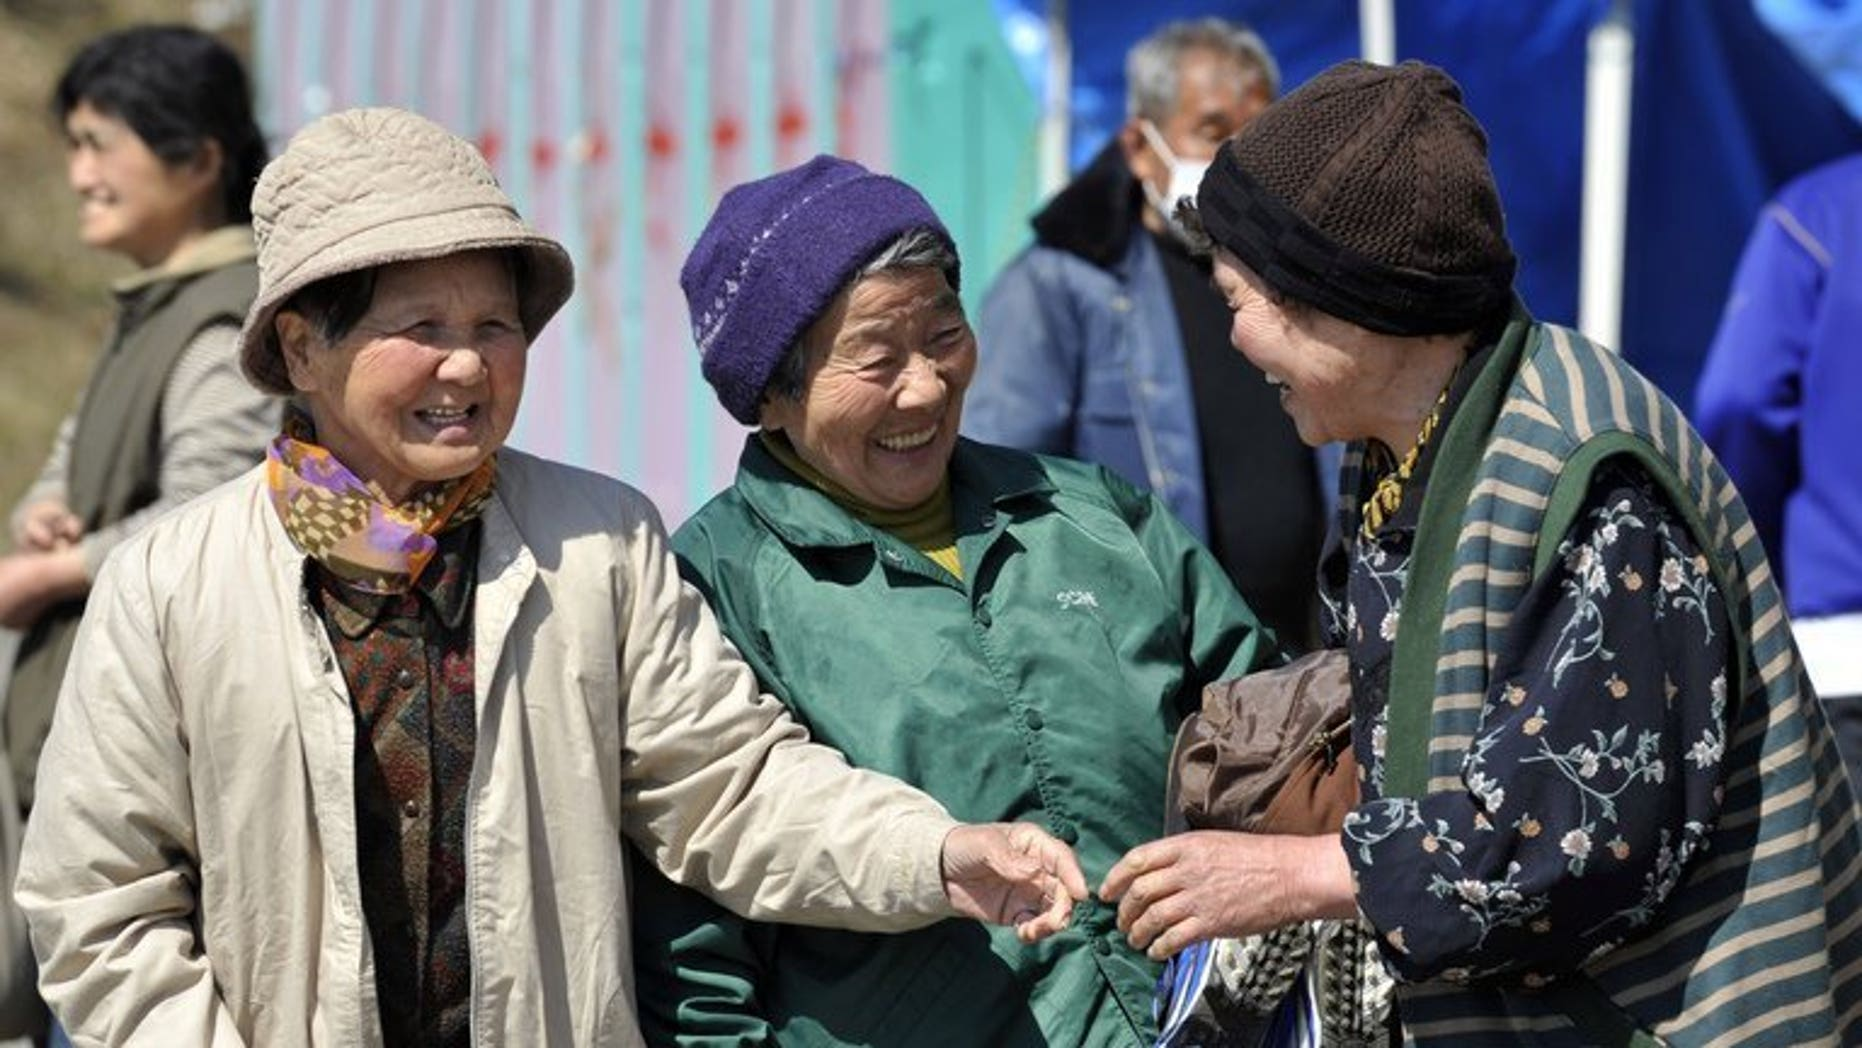 Elderly women are seen chatting in the town of Minamisanriku in Miyagi prefecture on April 5, 2011. Japan's women retook their place as the world's longest-lived last year, edging out Hong Kongers as their life expectancy bounced back from the dip caused by the 2011 tsunami, officials said.